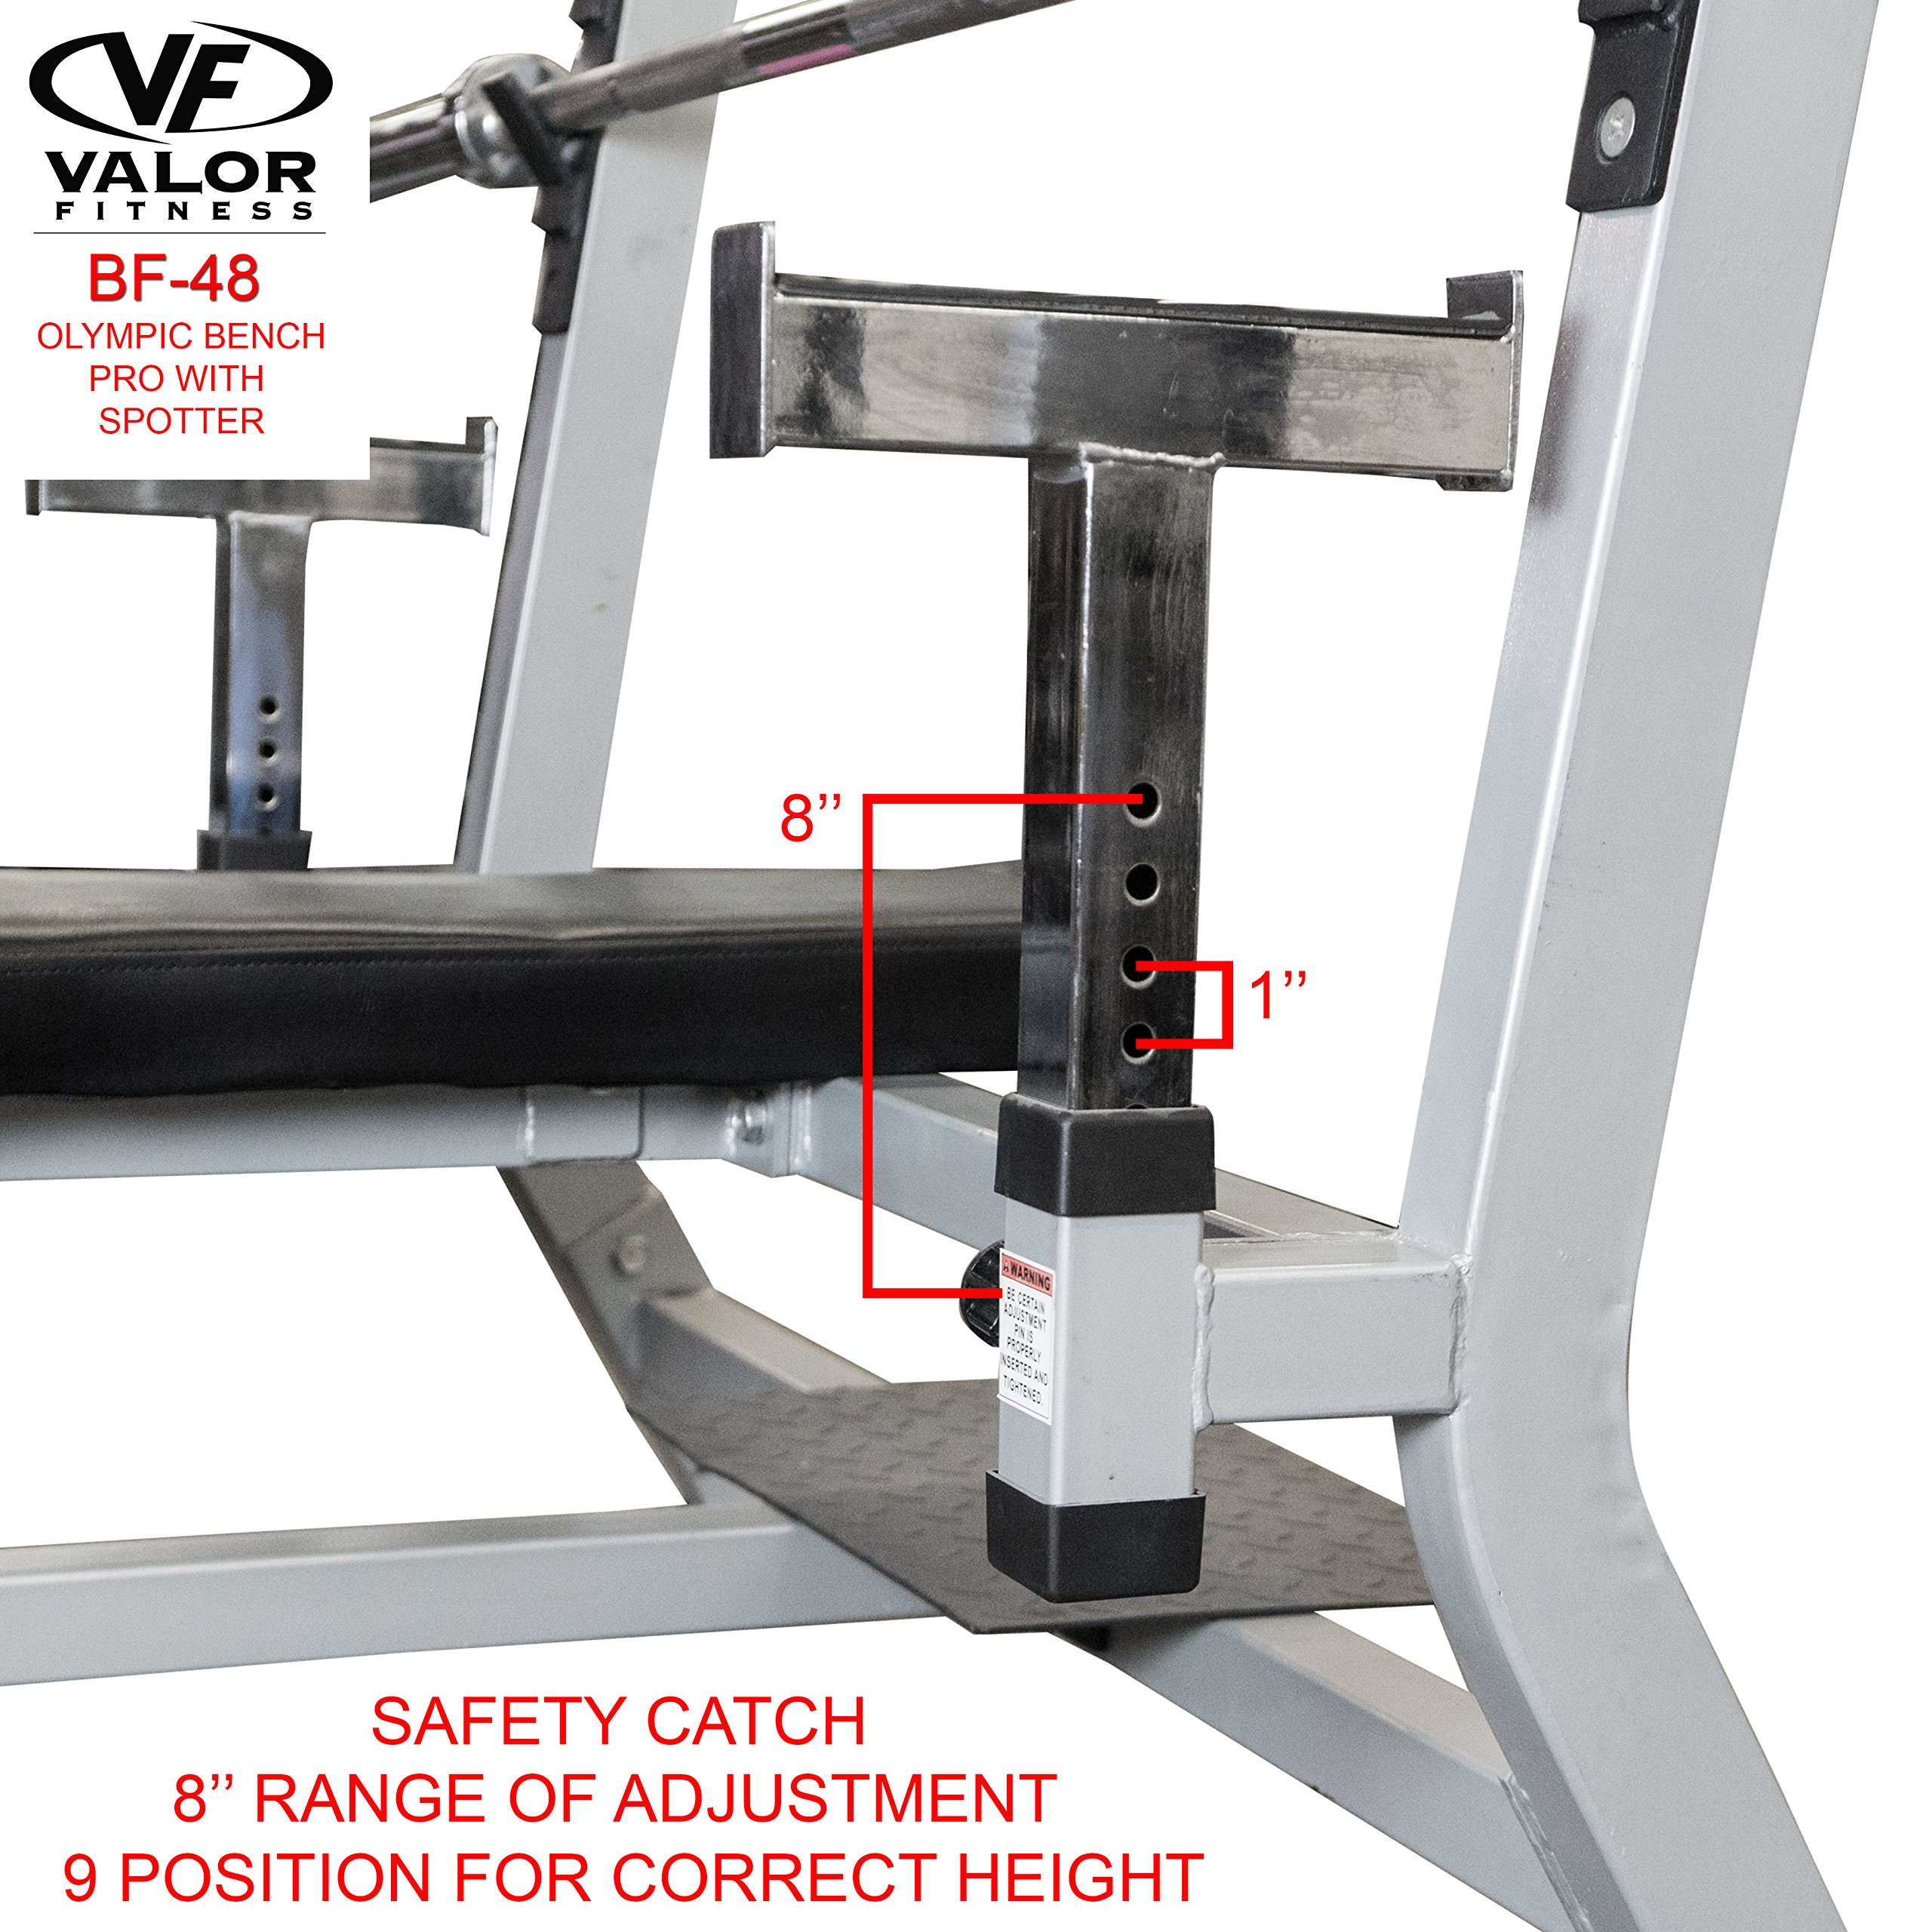 Valor Fitness BF-48 Olympic Bench Pro with Spotter by Valor Fitness (Image #4)